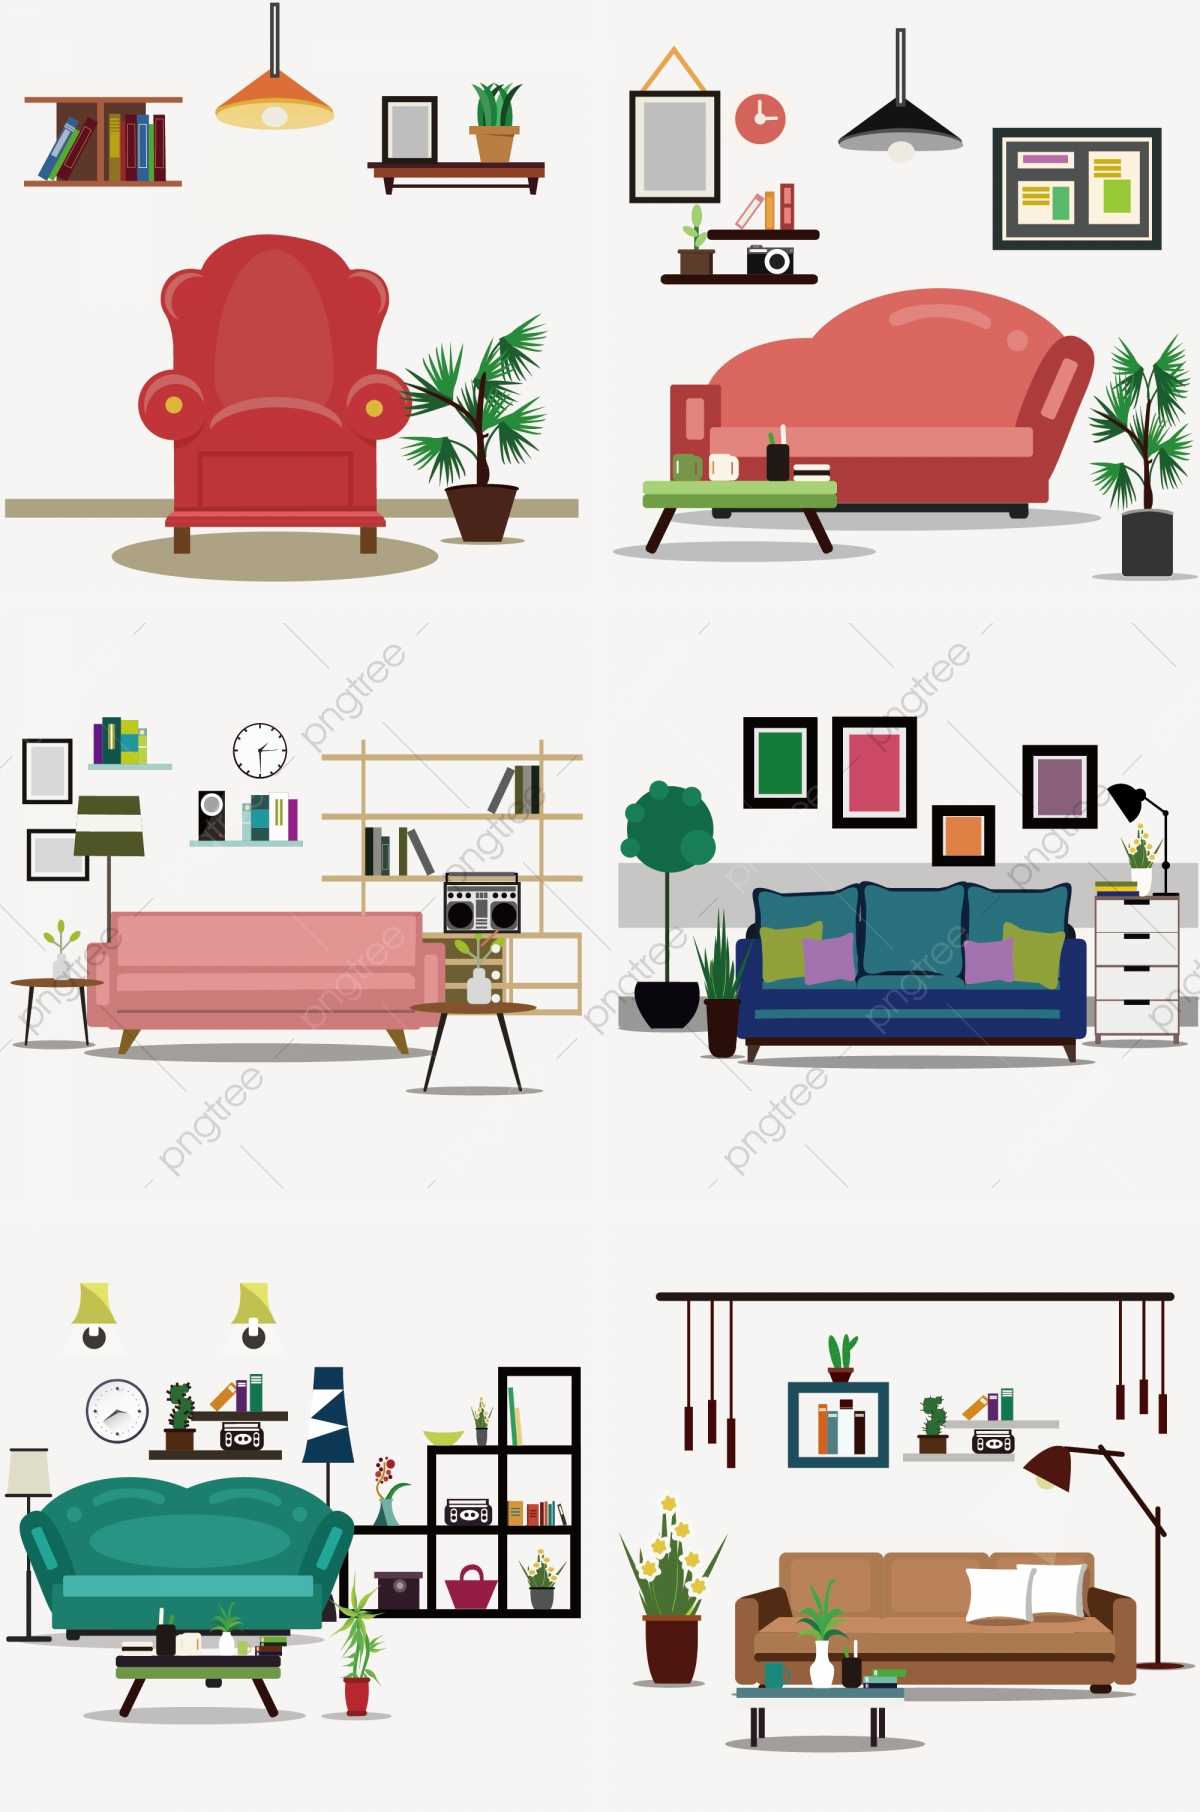 Picture of: Sofa Pillow Small Coffee Table Storage Box Light Show Books Potted Vase Png And Vector With Transparent Background For Free Download